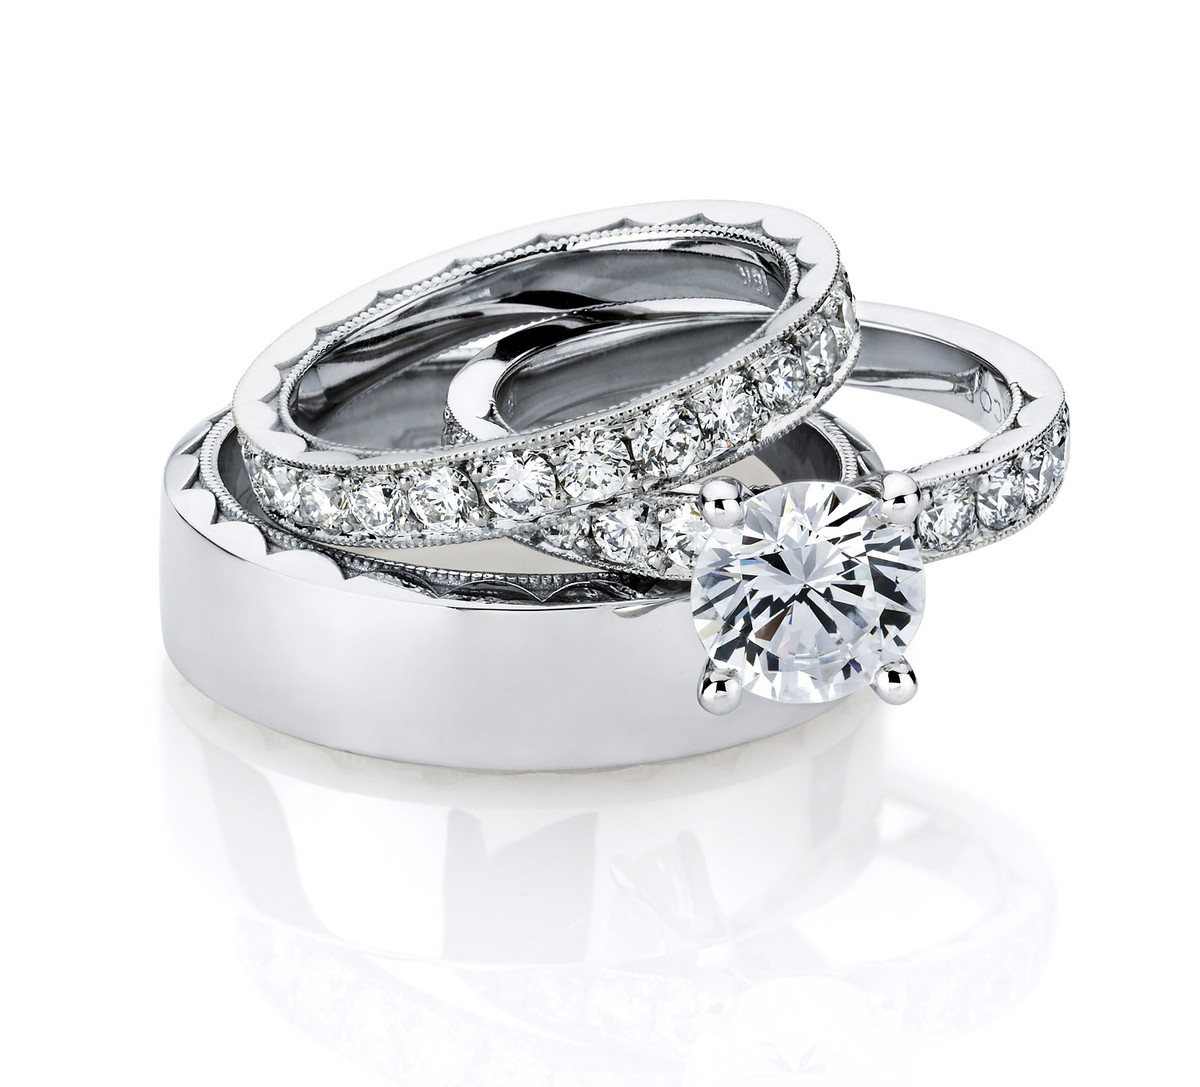 wedding rings sets his and hers for cheap cheap wedding rings sets wedding rings sets his and hers for cheap hd photo